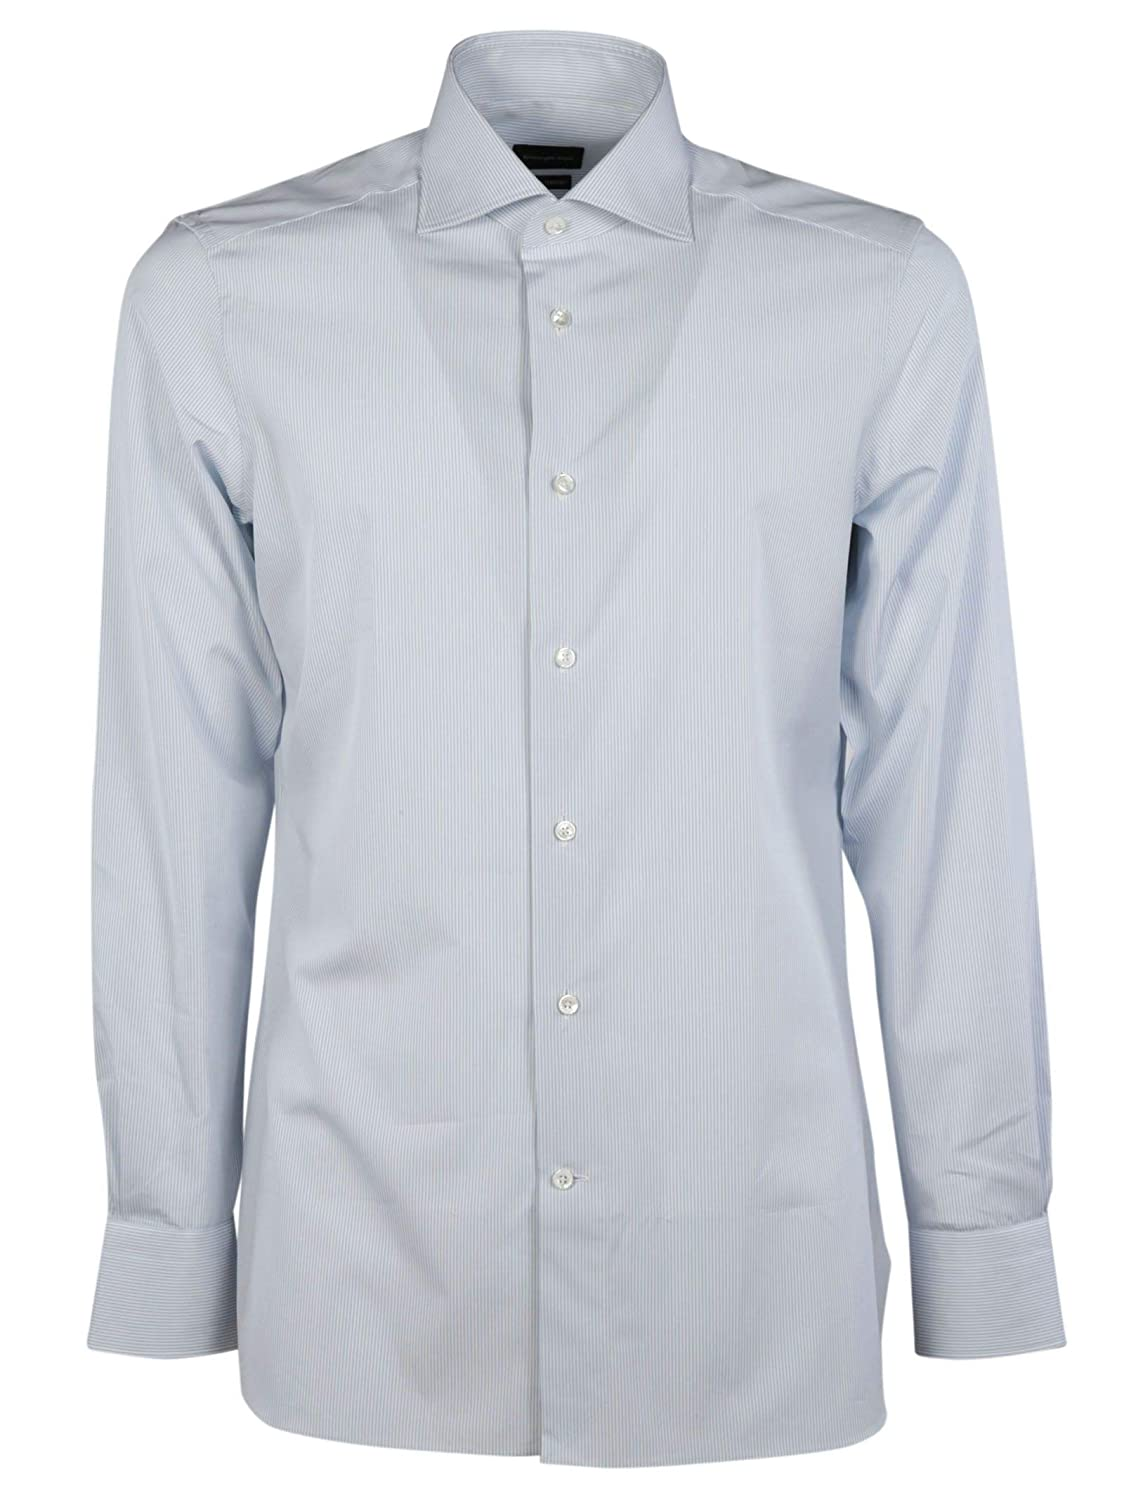 50b894872139 Z Zegna Men's 3010789MS0BA 3010789MS0BA 3010789MS0BA Light blueee Cotton  Shirt e97383